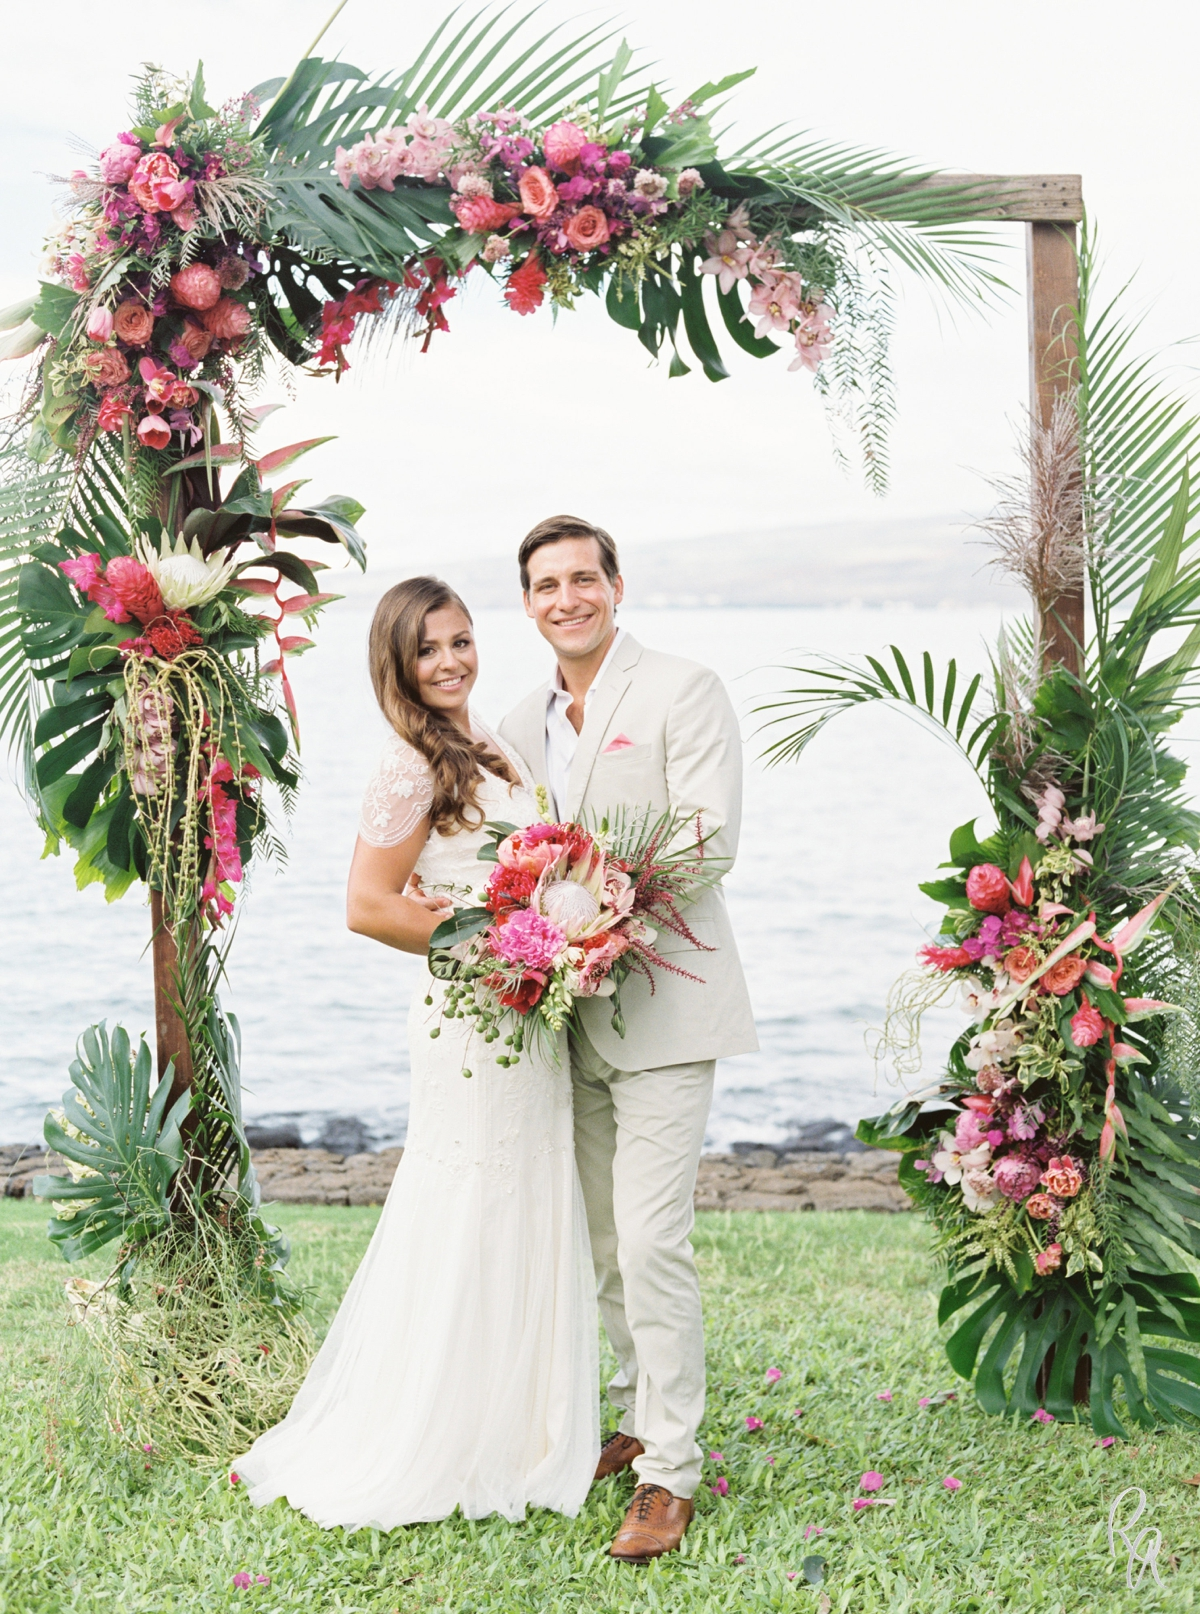 Martha stewart weddings big island hawaii wedding the sullivan martha stewart weddings big island hawaii wedding the sullivan estate kai kristina rebecca arthurs junglespirit Choice Image